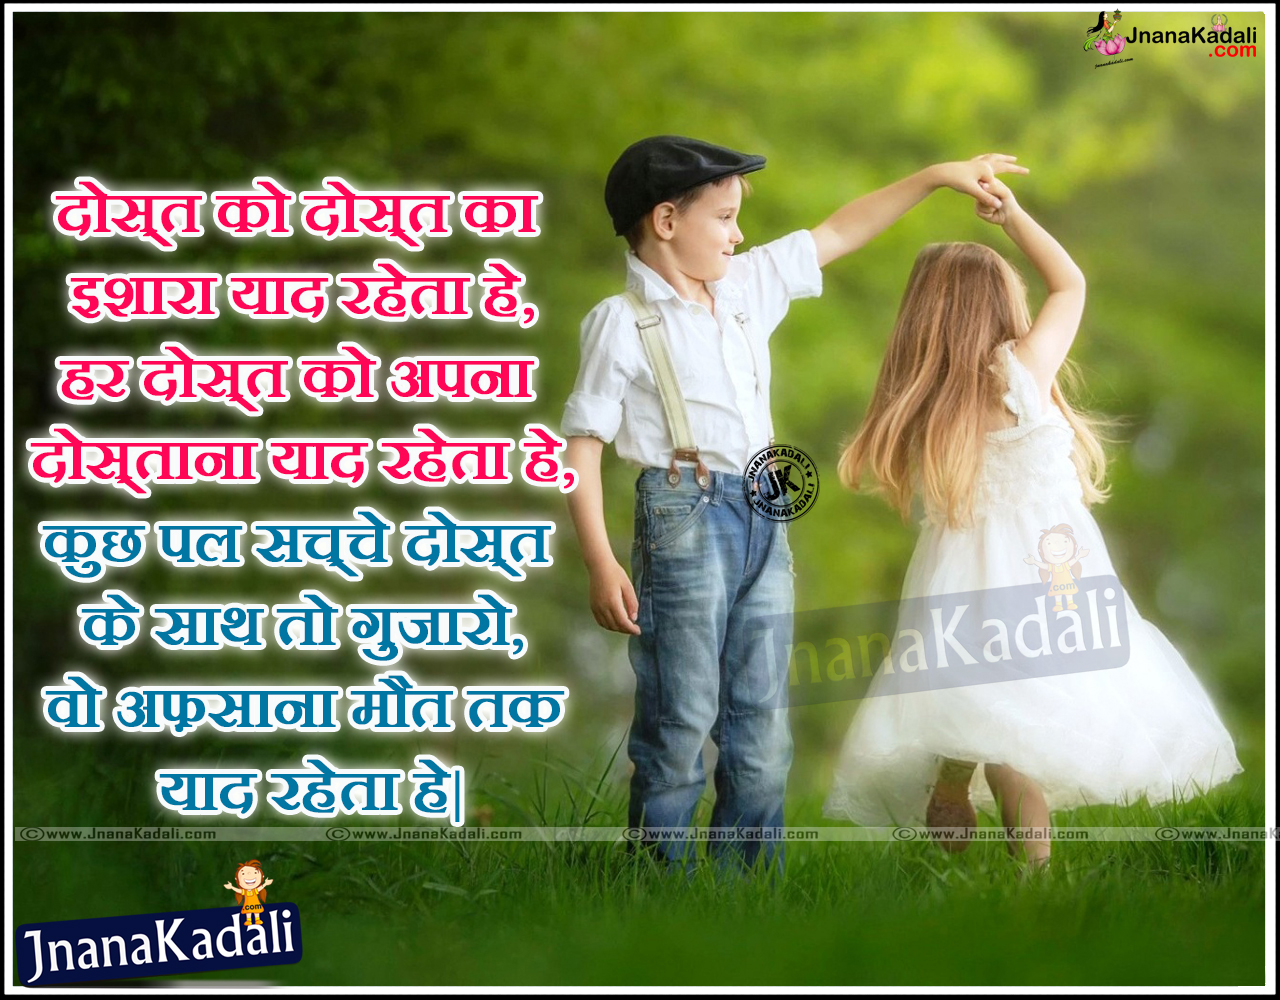 New Friendship Wallpapers With Quotes In Hindi Animaxwallpaper Com